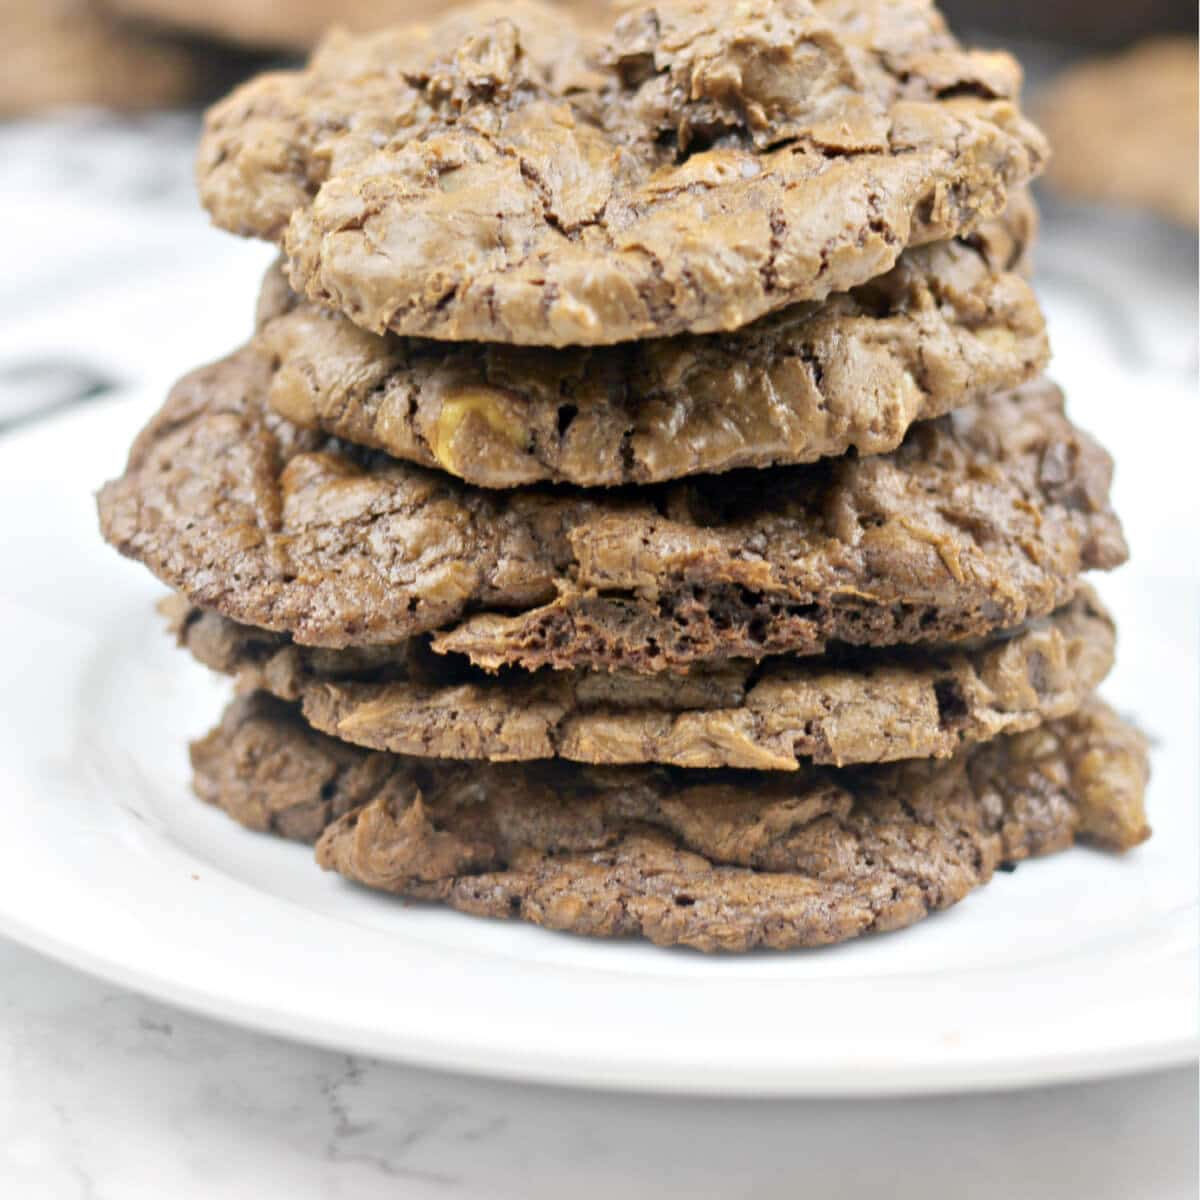 Chocolate and peanut butter cookies stacked on a white plate.